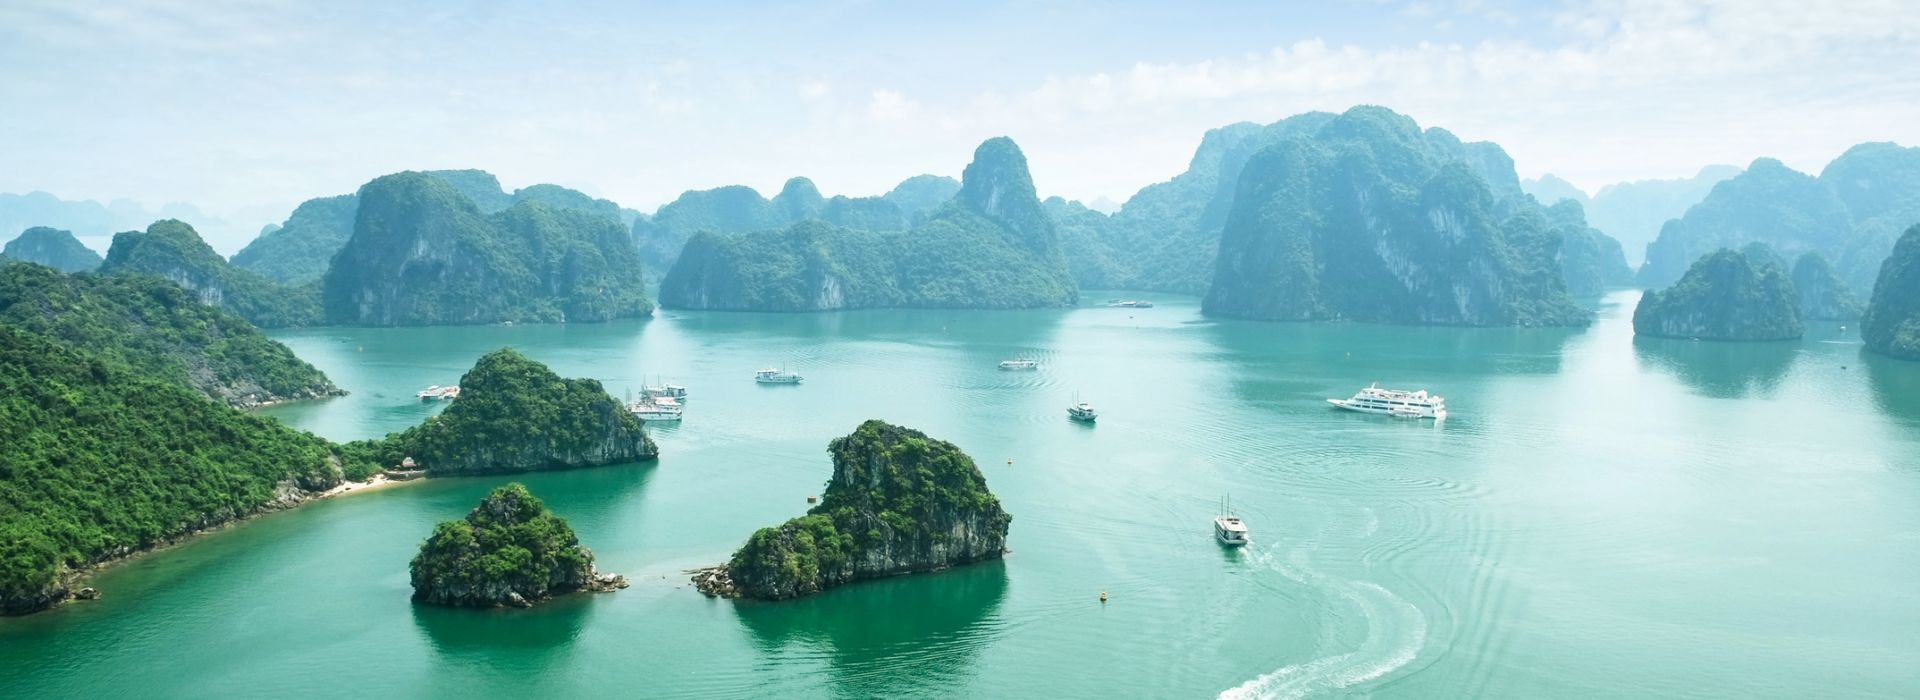 Kayaking and canoeing Tours in Vietnam